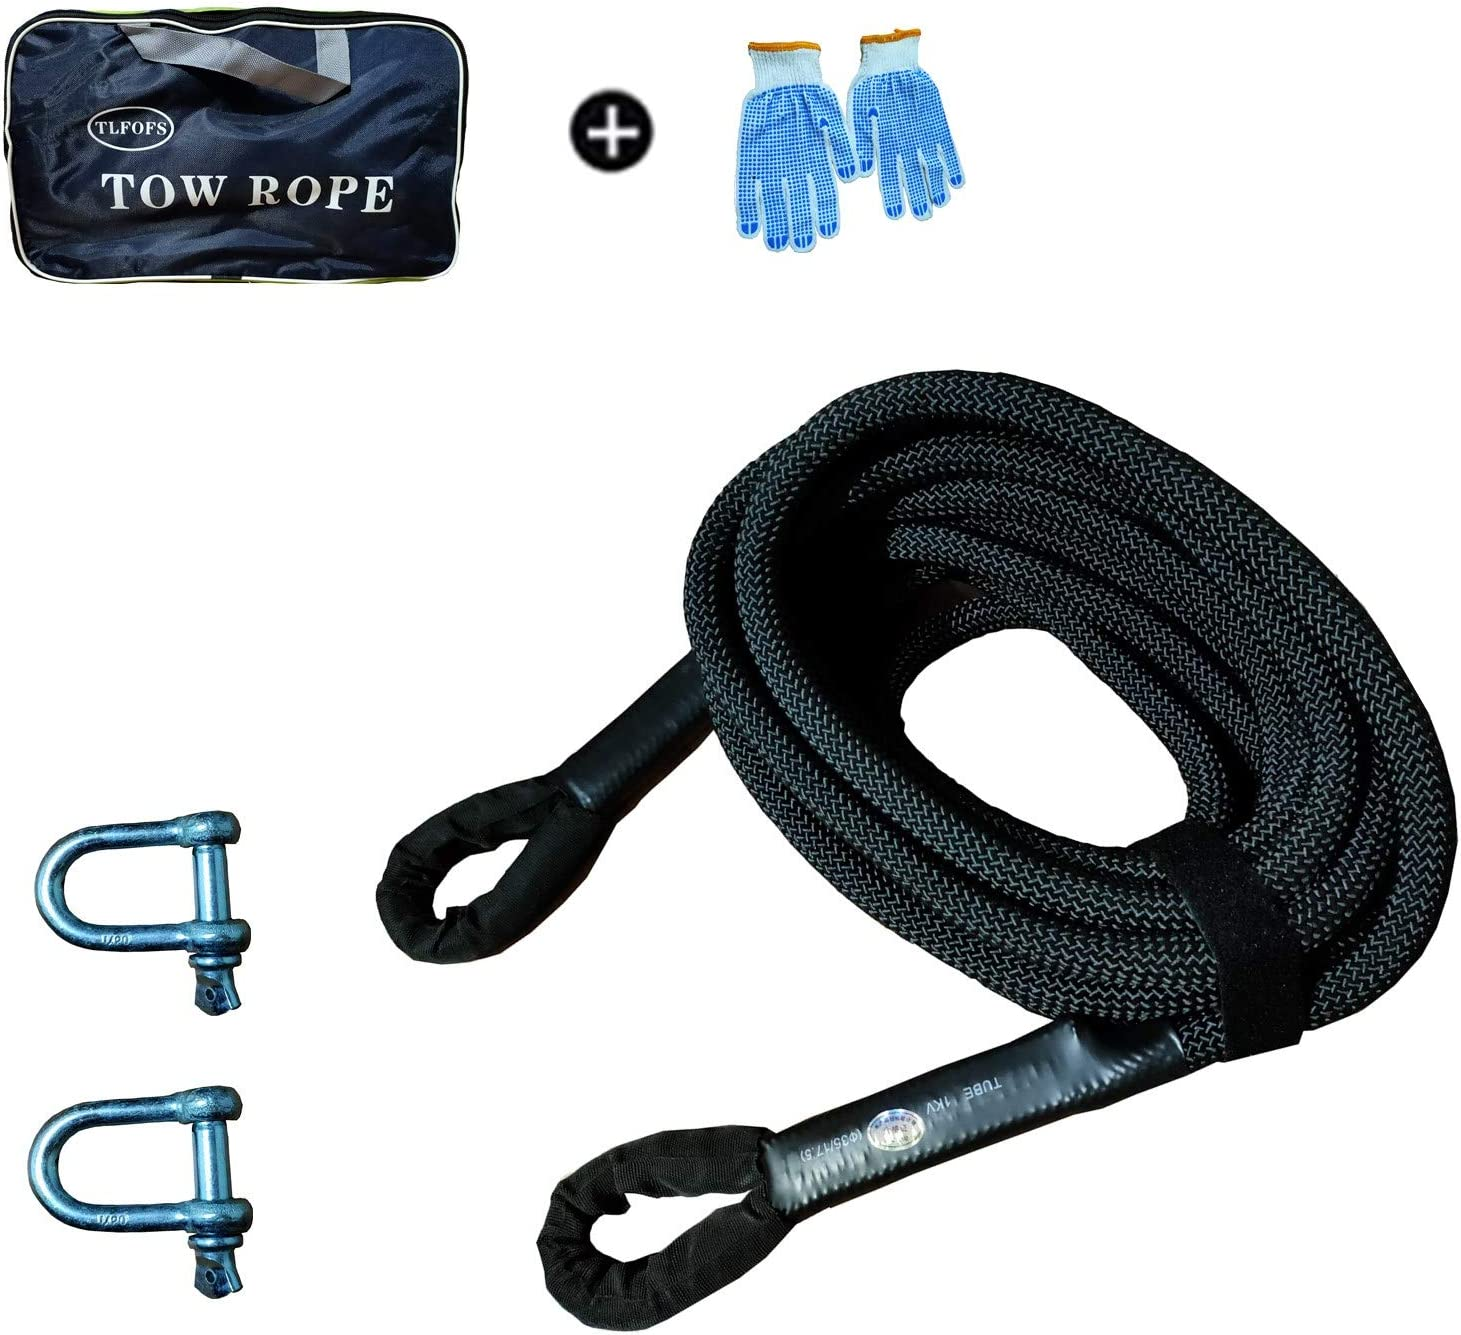 TLFOFS Our shop most popular New product!! Recovery Tow Strap Ropes 3 Kinetic X ' 32.8 4'' Rec